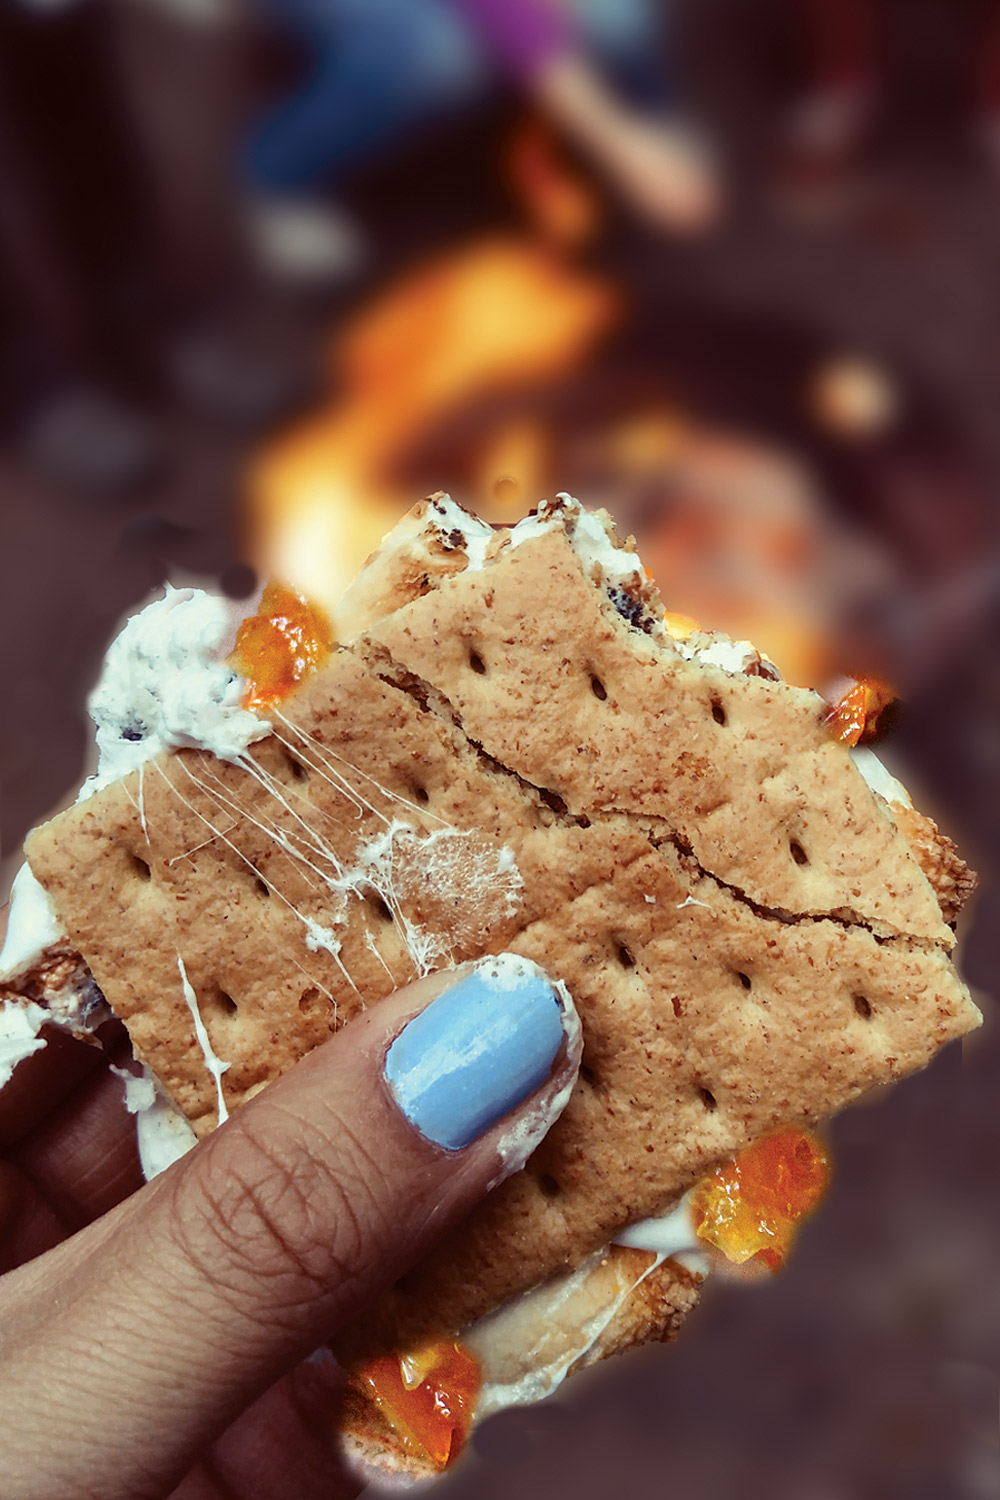 Hand grasping a gooey orange marmalade s'more with campfire in background